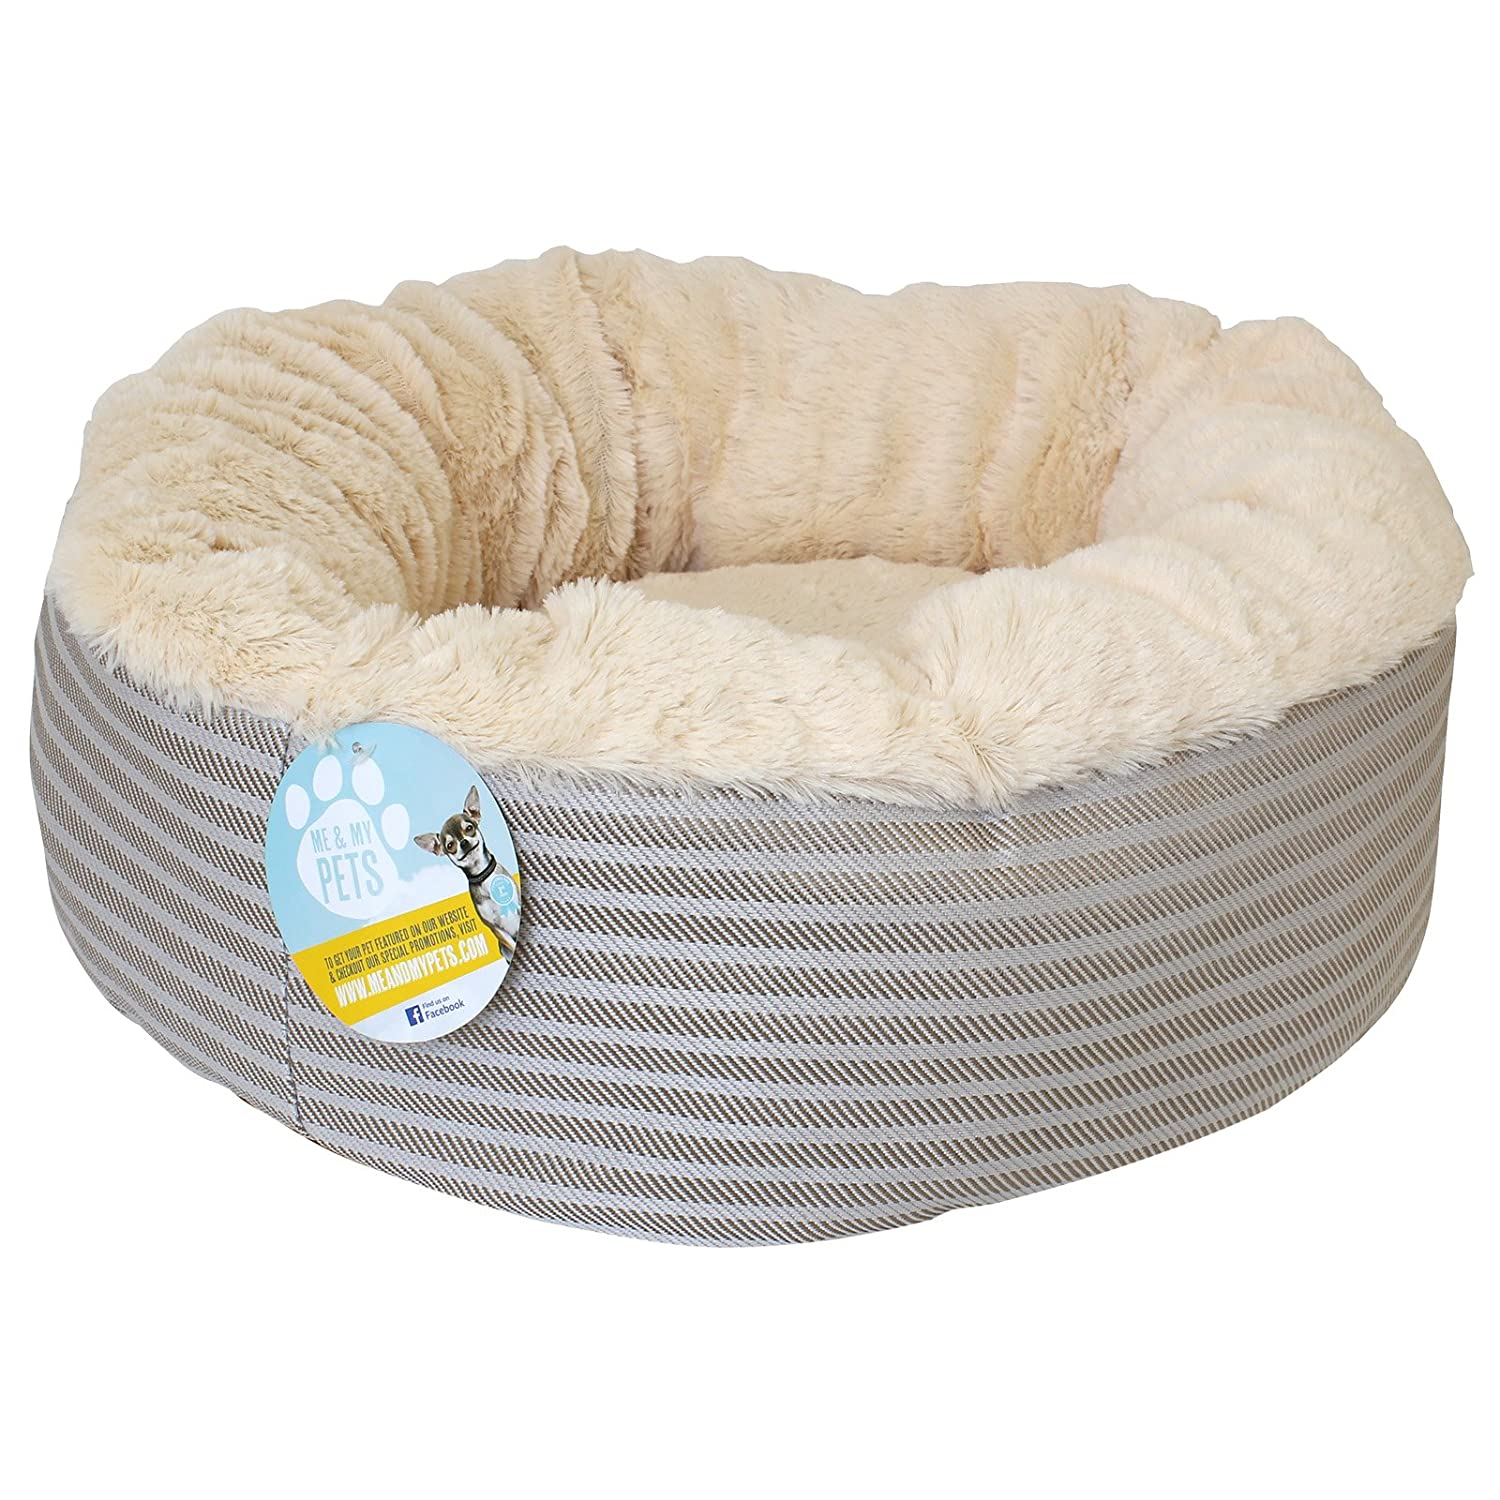 Me & My Super Soft Doughnut Pet Bed For Cats Puppies & Small Dogs:  Amazon: Pet Supplies